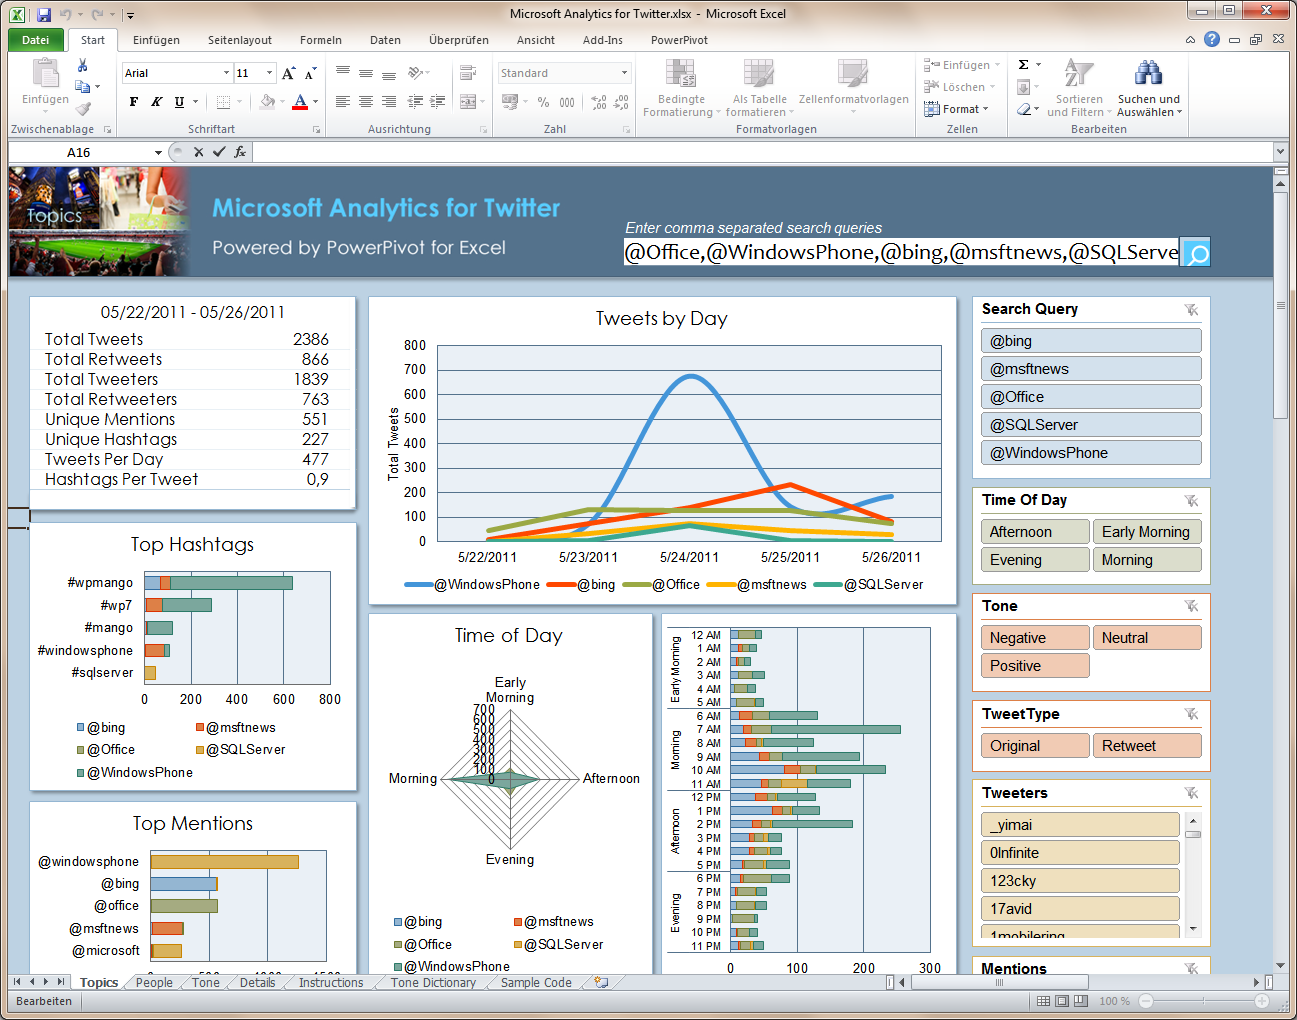 excel 2010 video dashboards Microsoft Analytics für